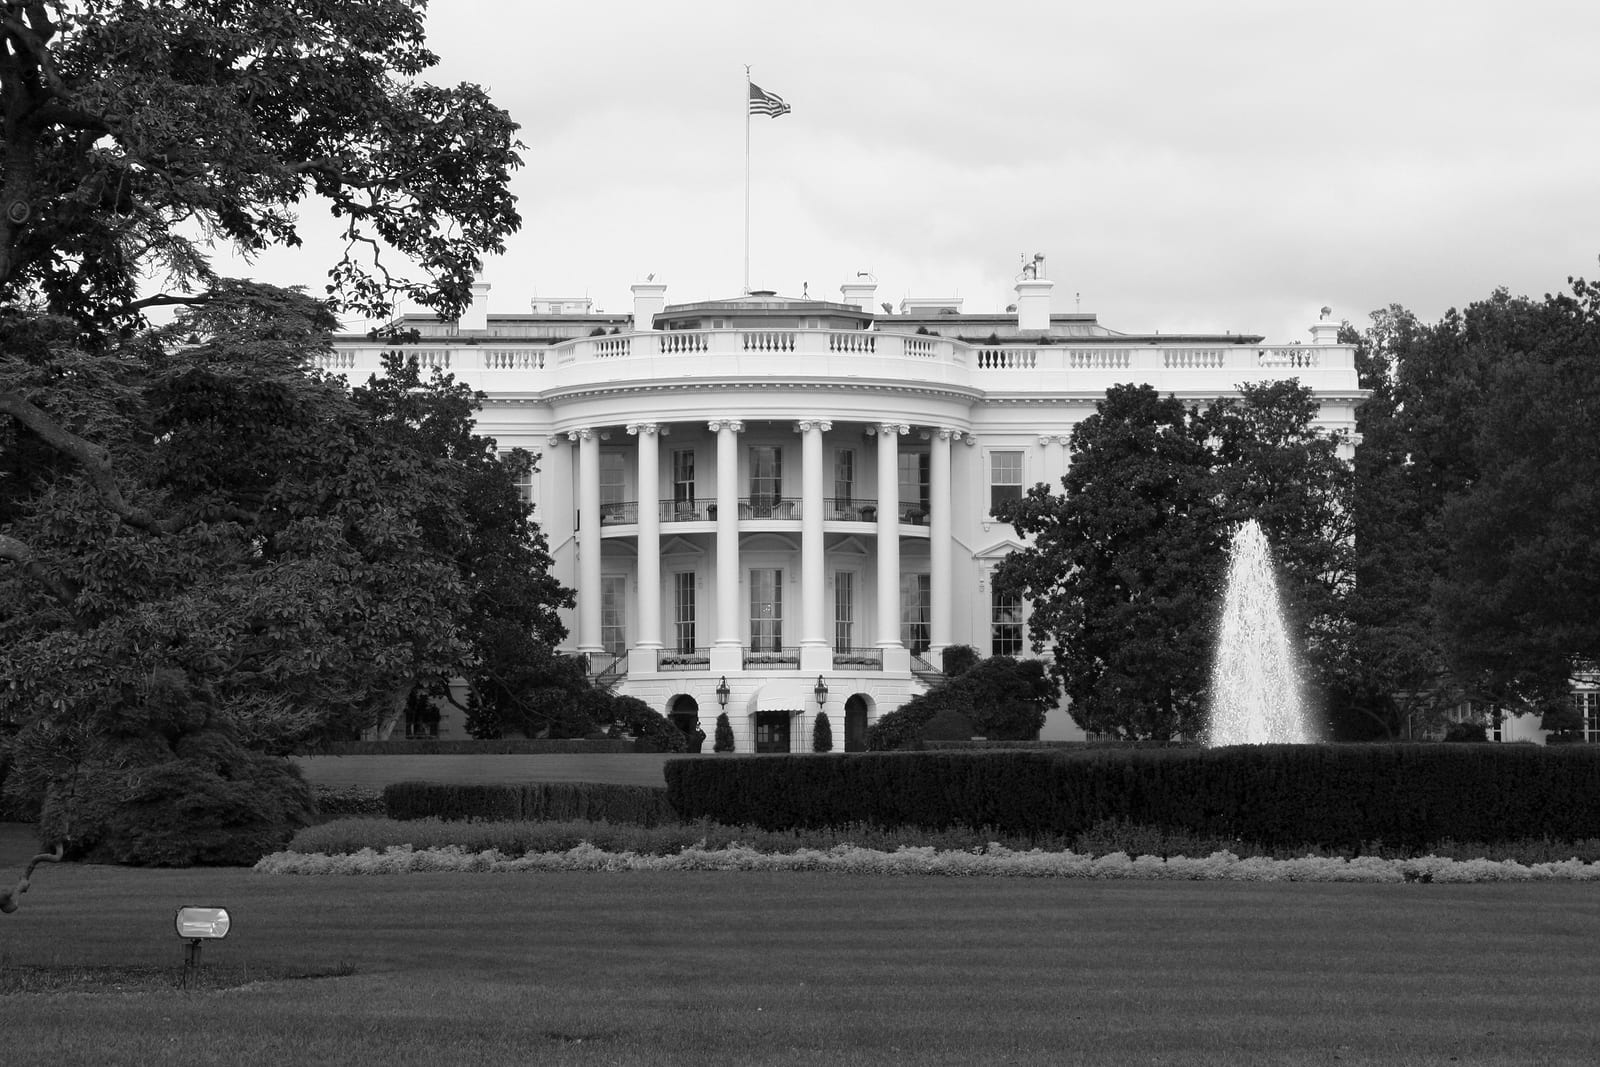 Black and white stock photo of the White House